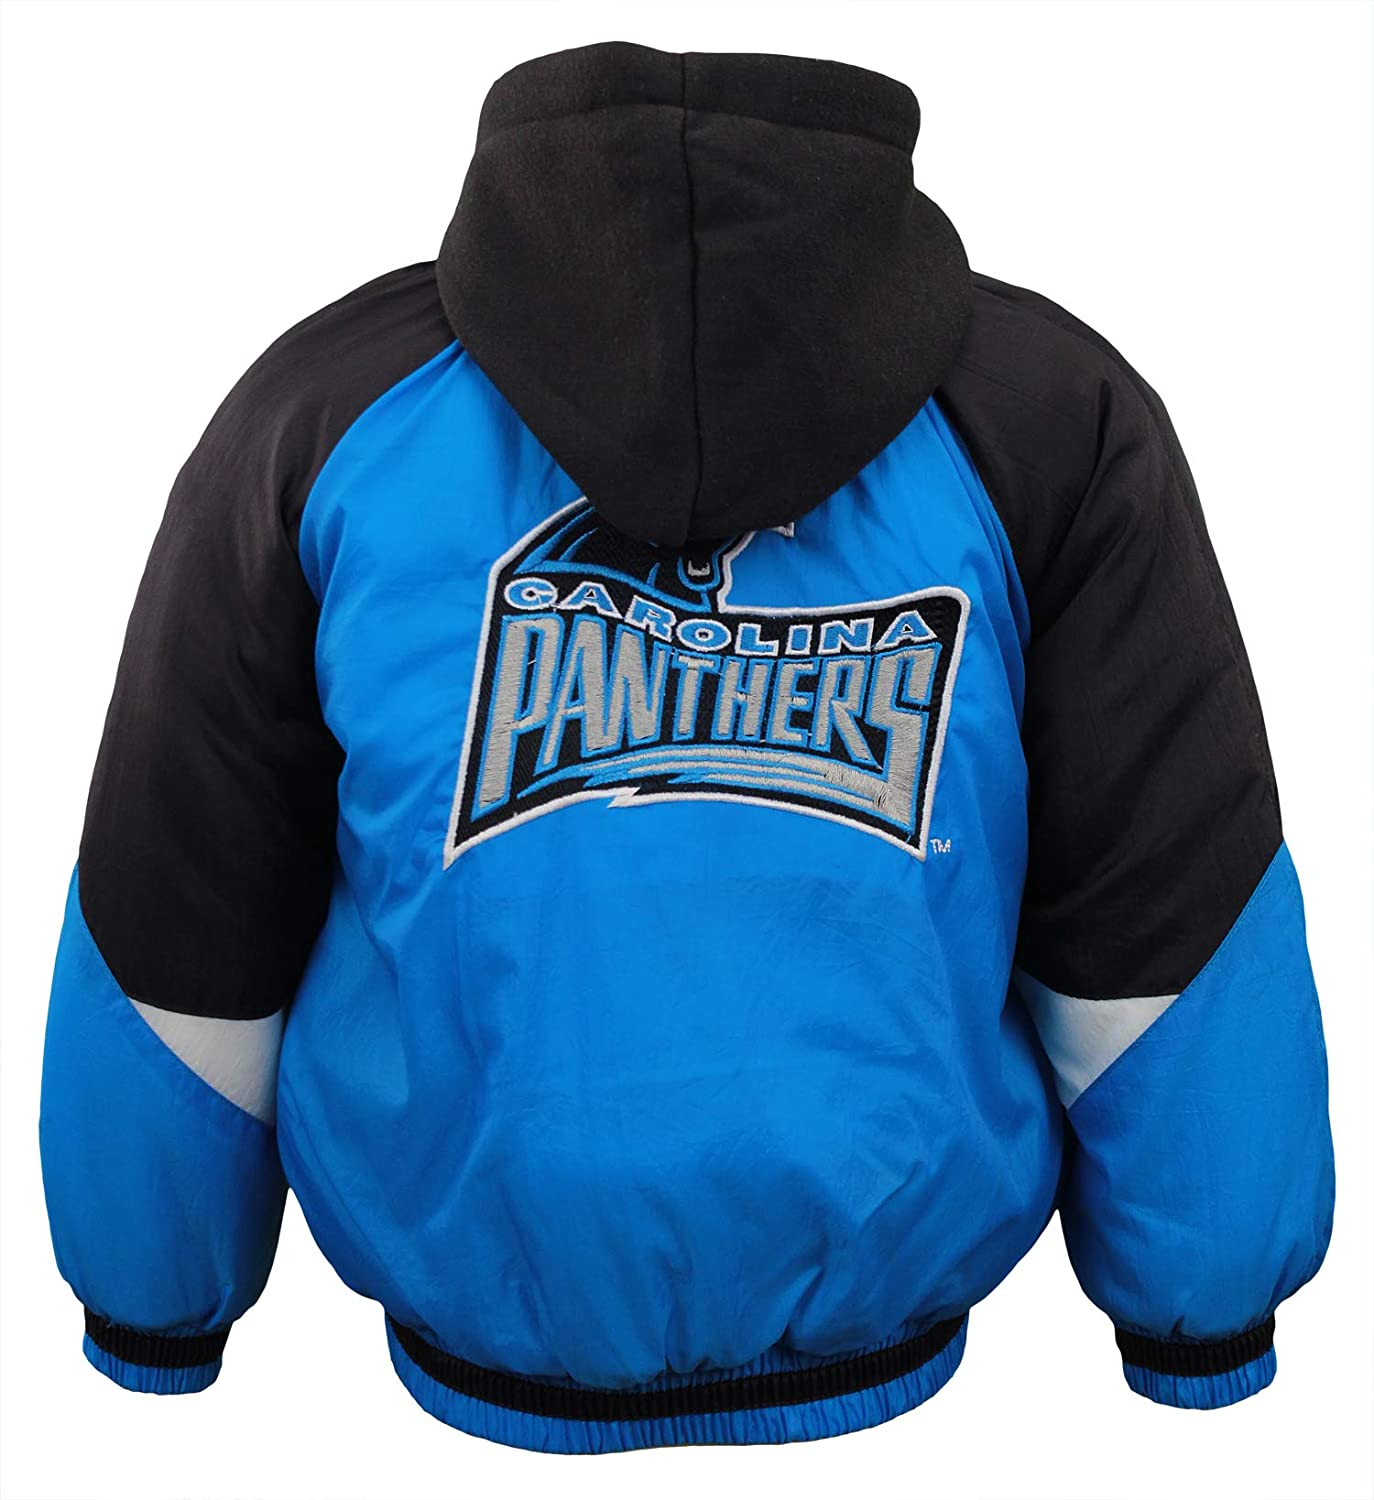 detailed look af4f8 e1a76 Amazon.com: Mighty Mac Carolina Panthers NFL Little Boys ...